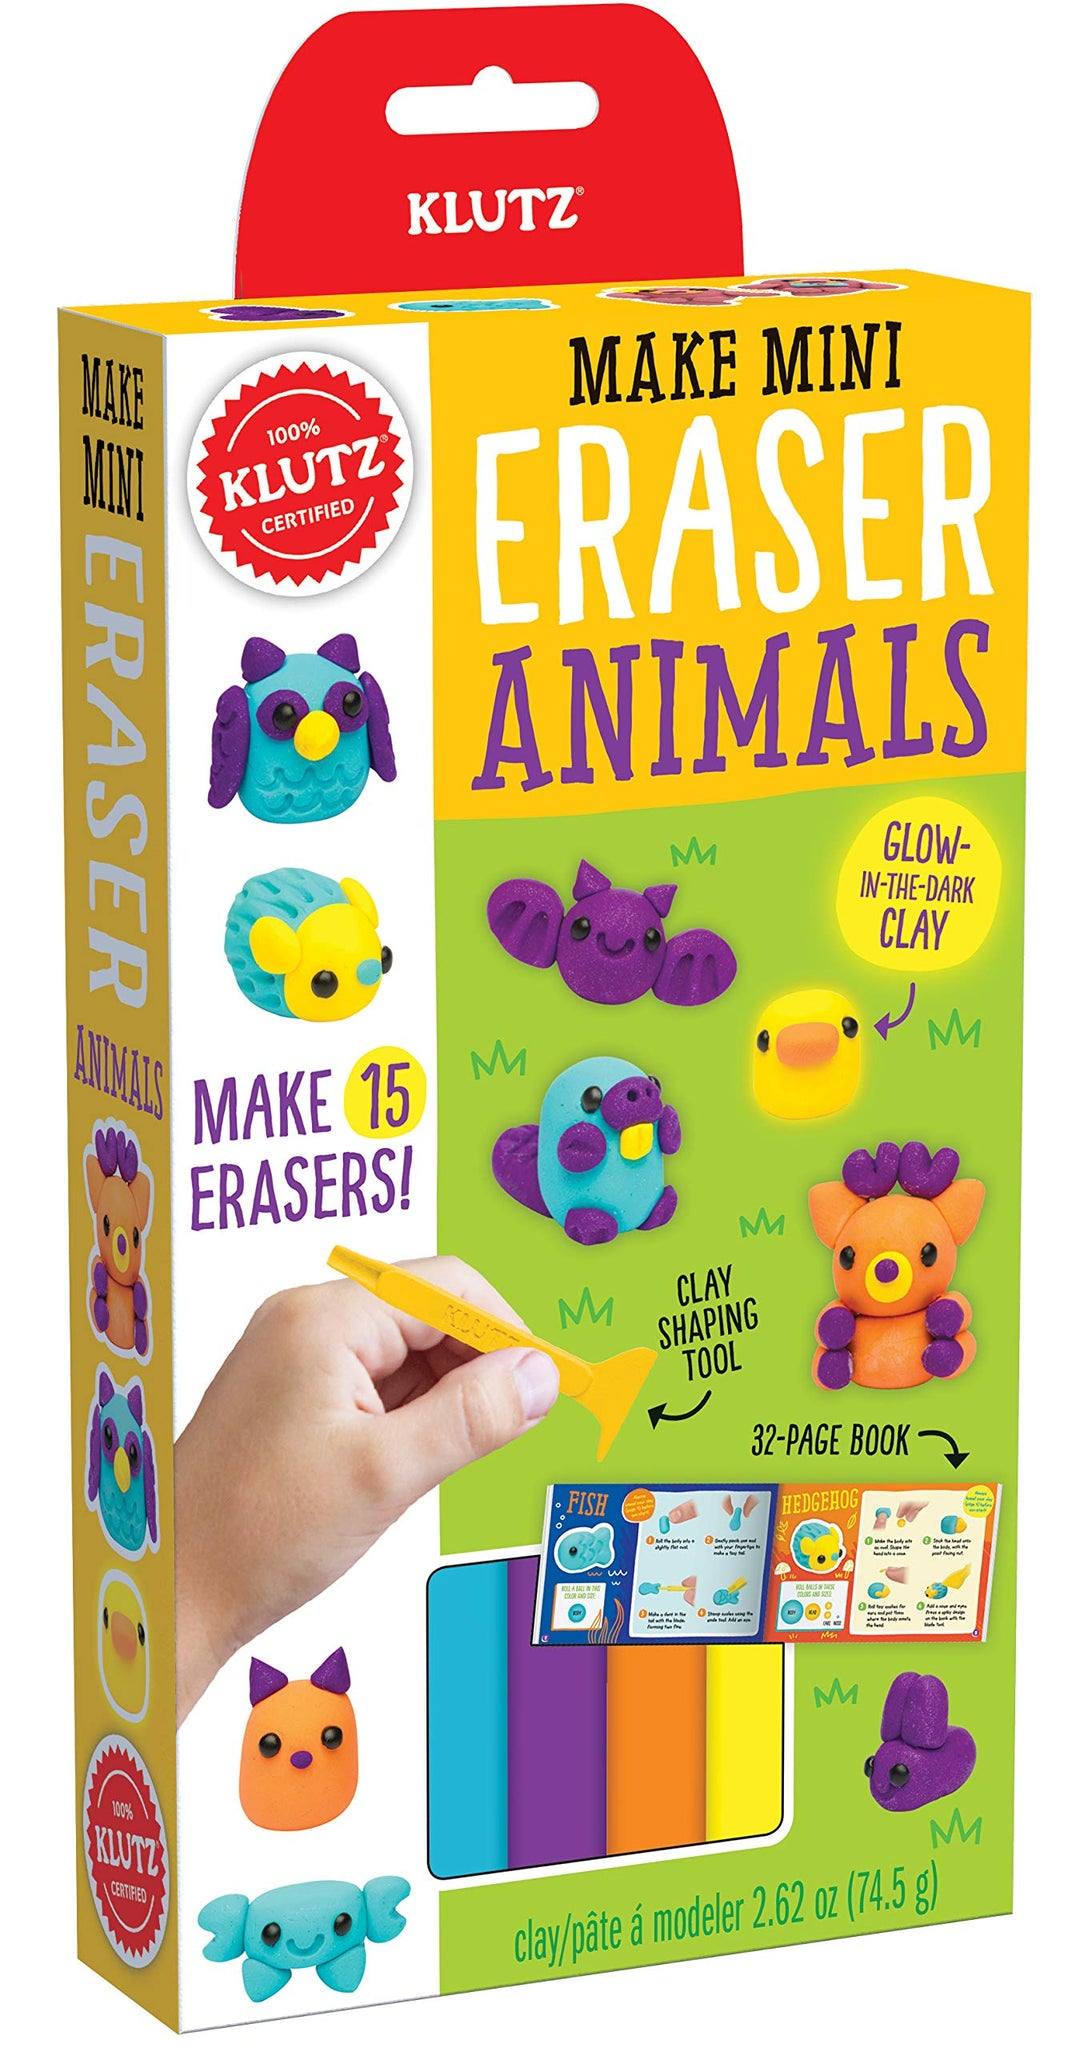 Klutz Make Mini Eraser Animals Craft Kit